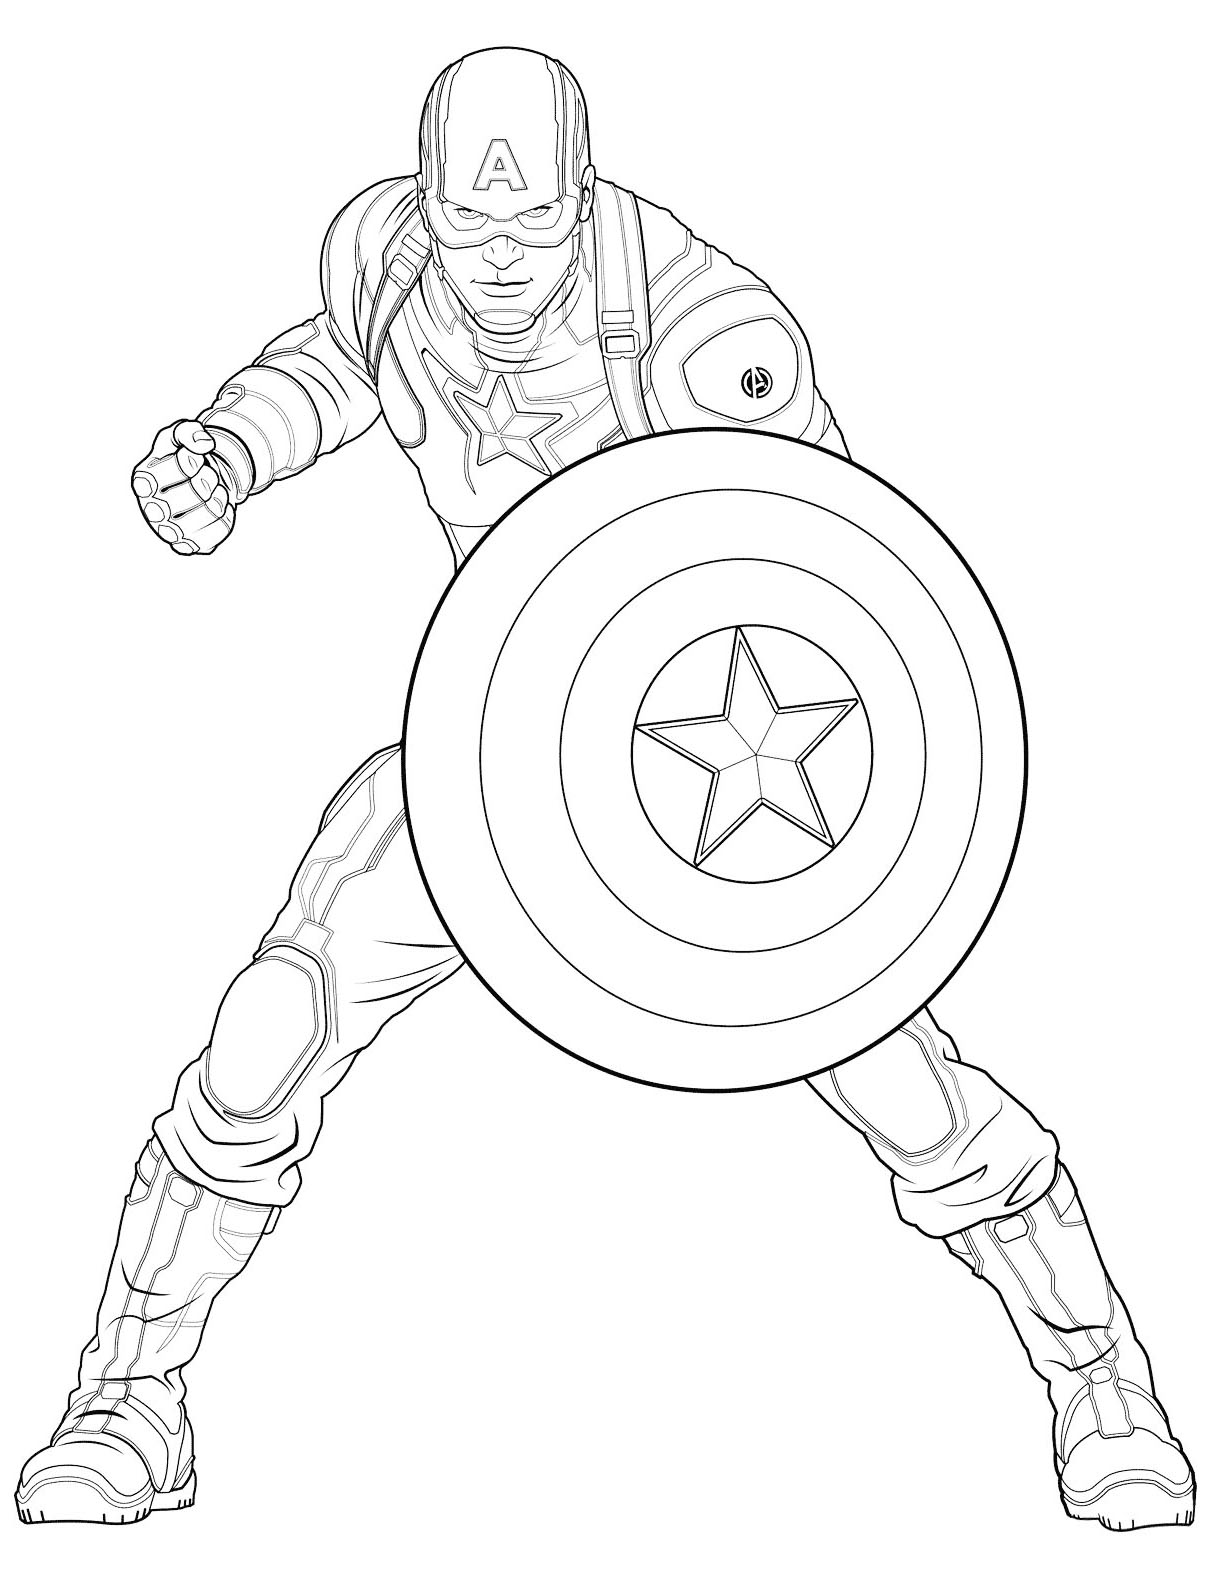 Captain America 2 Coloring Pages - Get Coloring Pages | 1595x1213